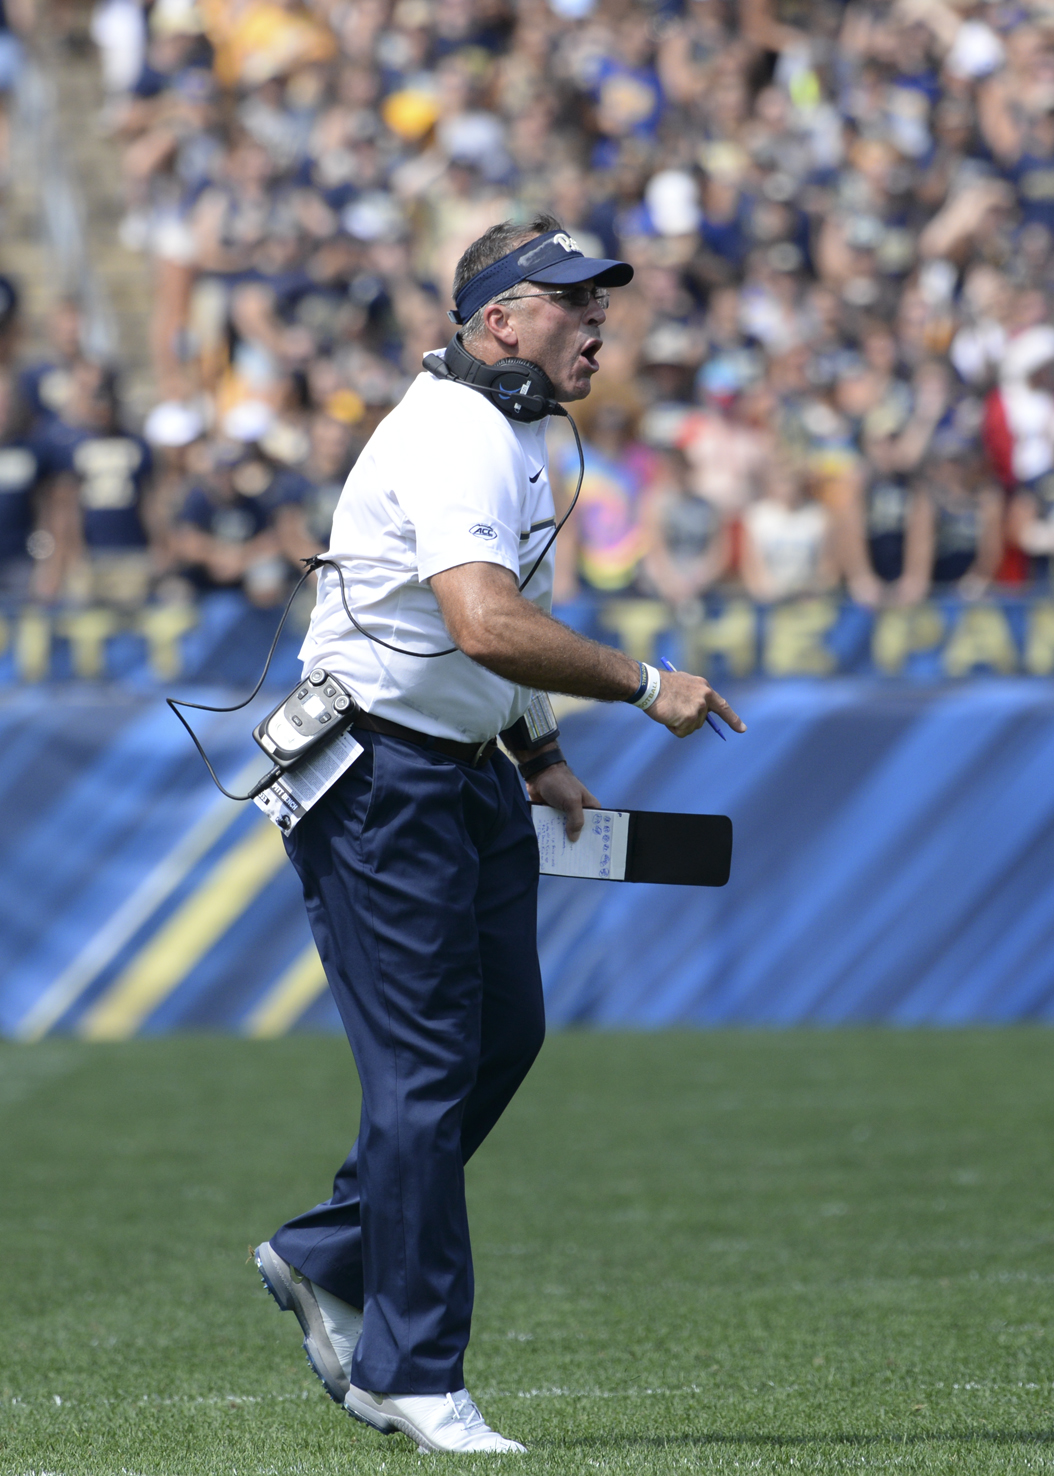 The ACC fined Pitt football coach Pat Narduzzi $5,000 for words critical of referees' calls Thursday night against Virginia Tech. Jeff Ahearn | Senior Staff Photographer